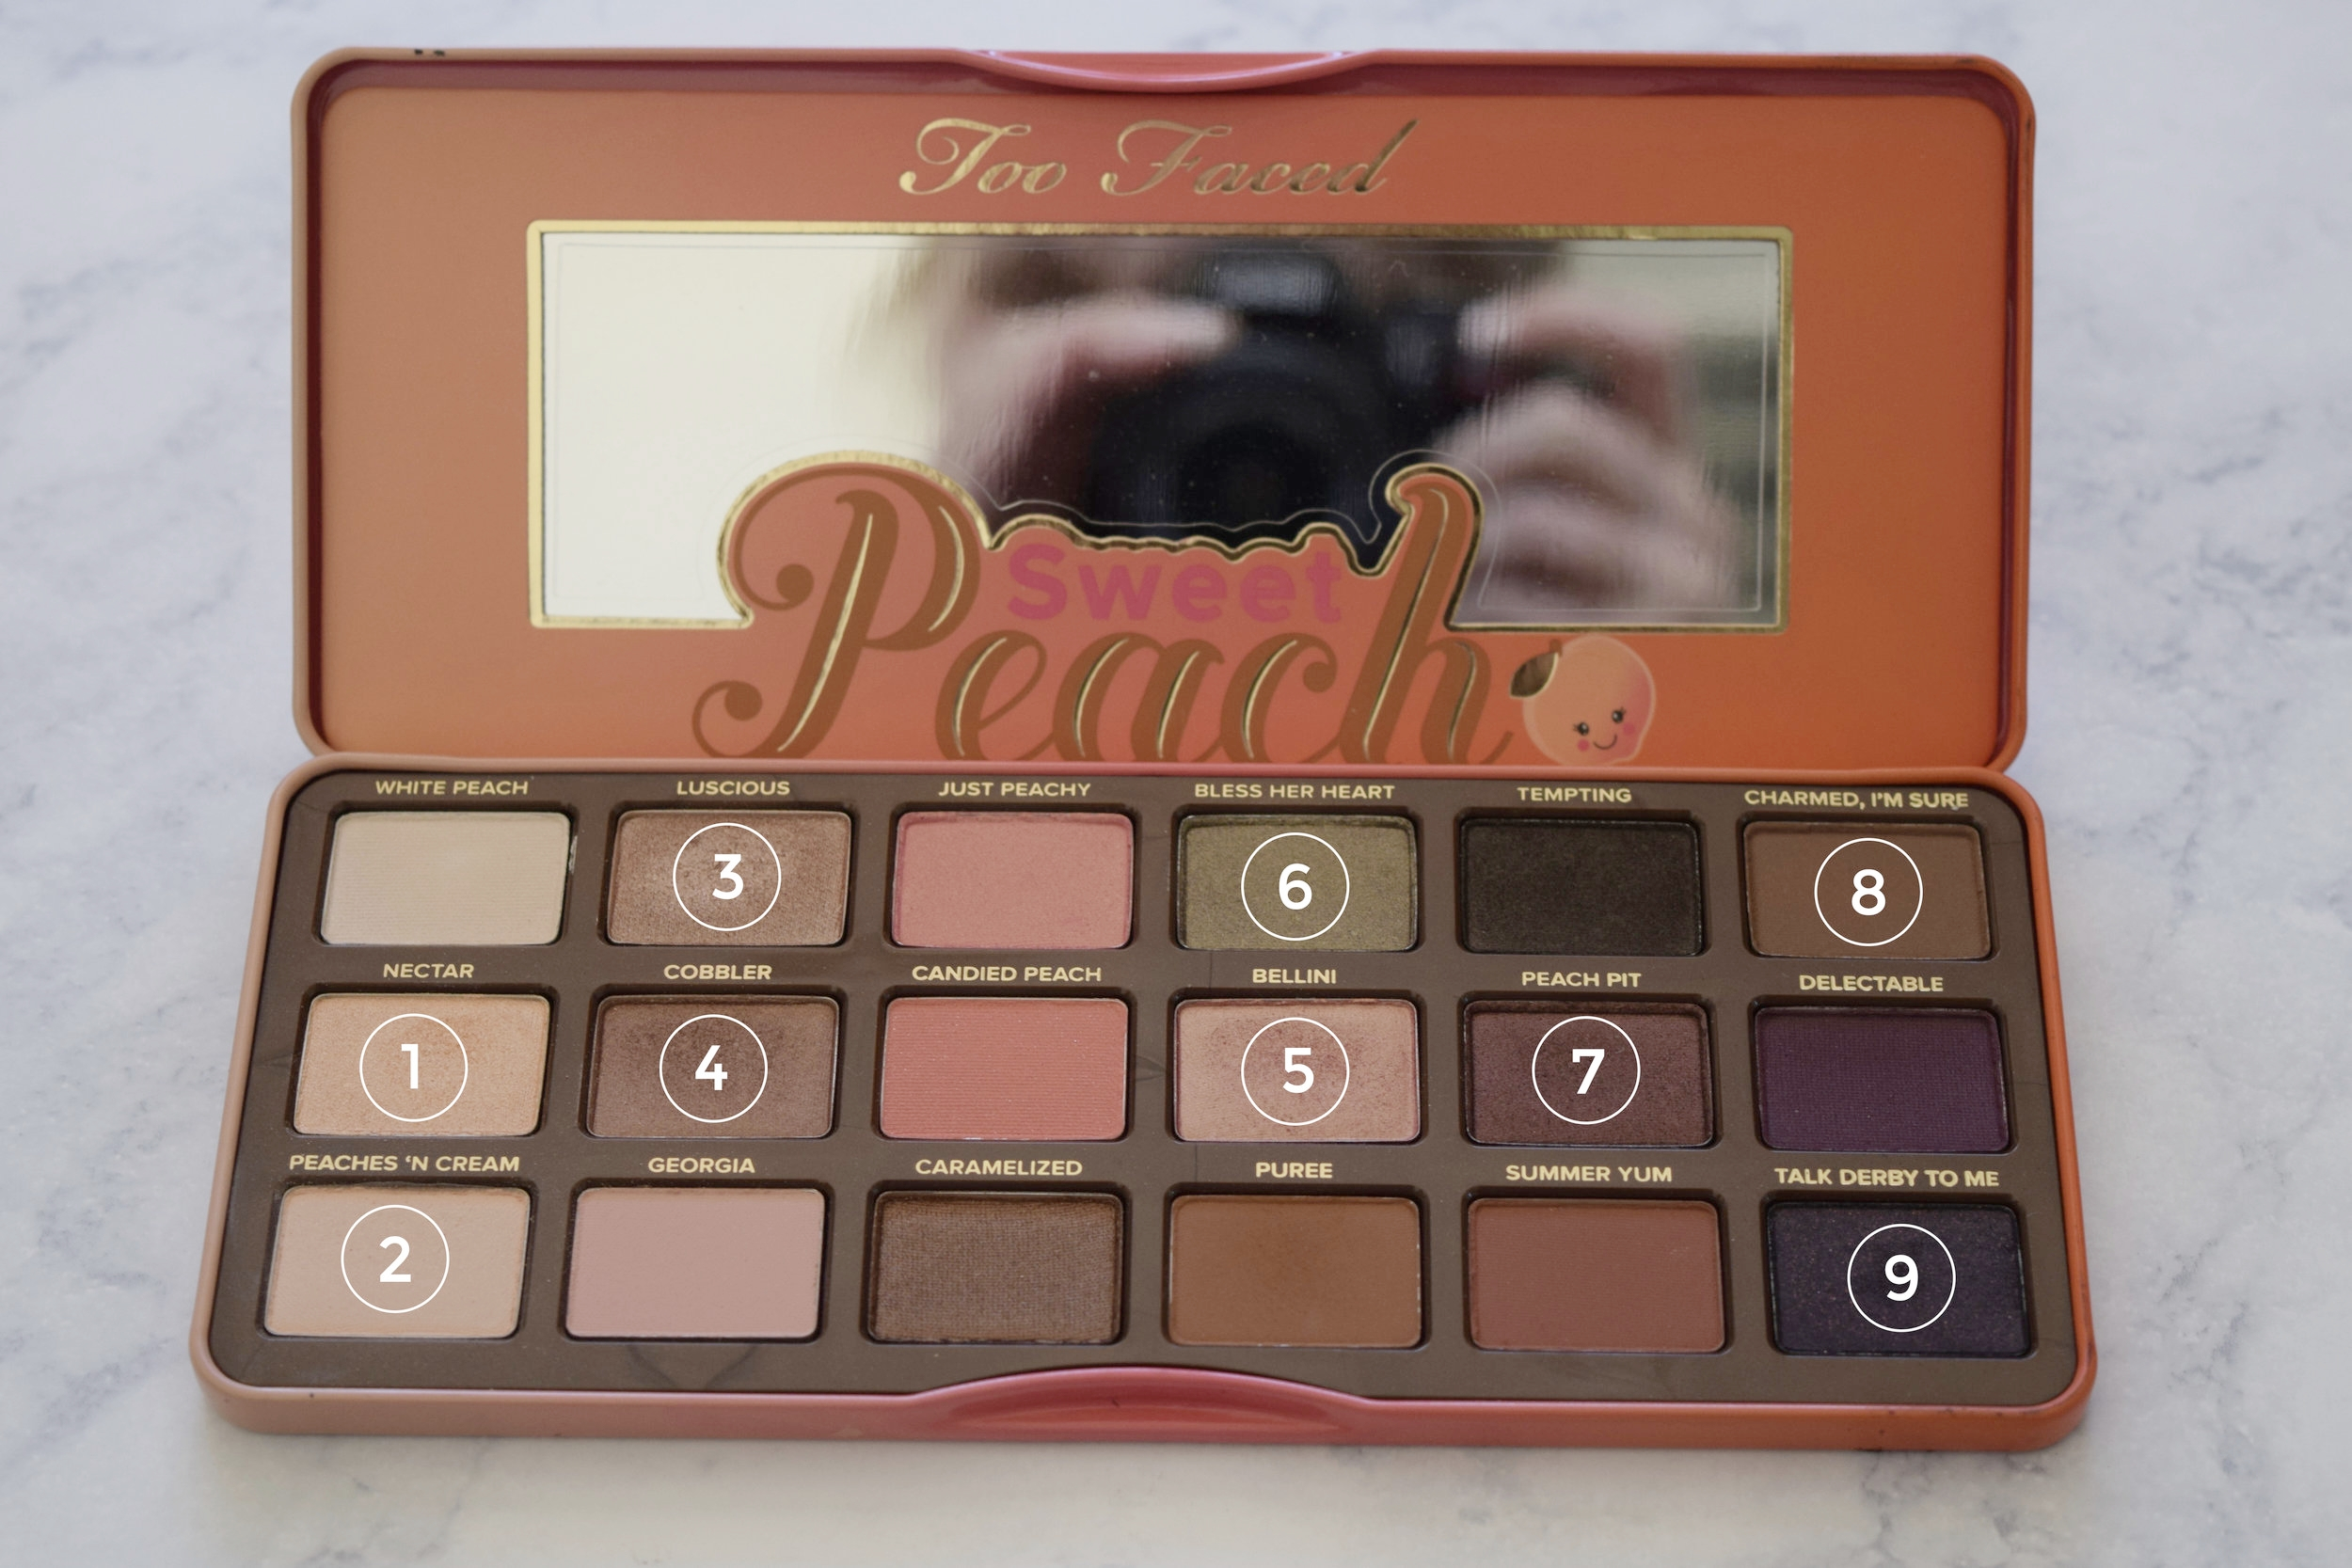 Sweet Peach Too Faced Palette Review